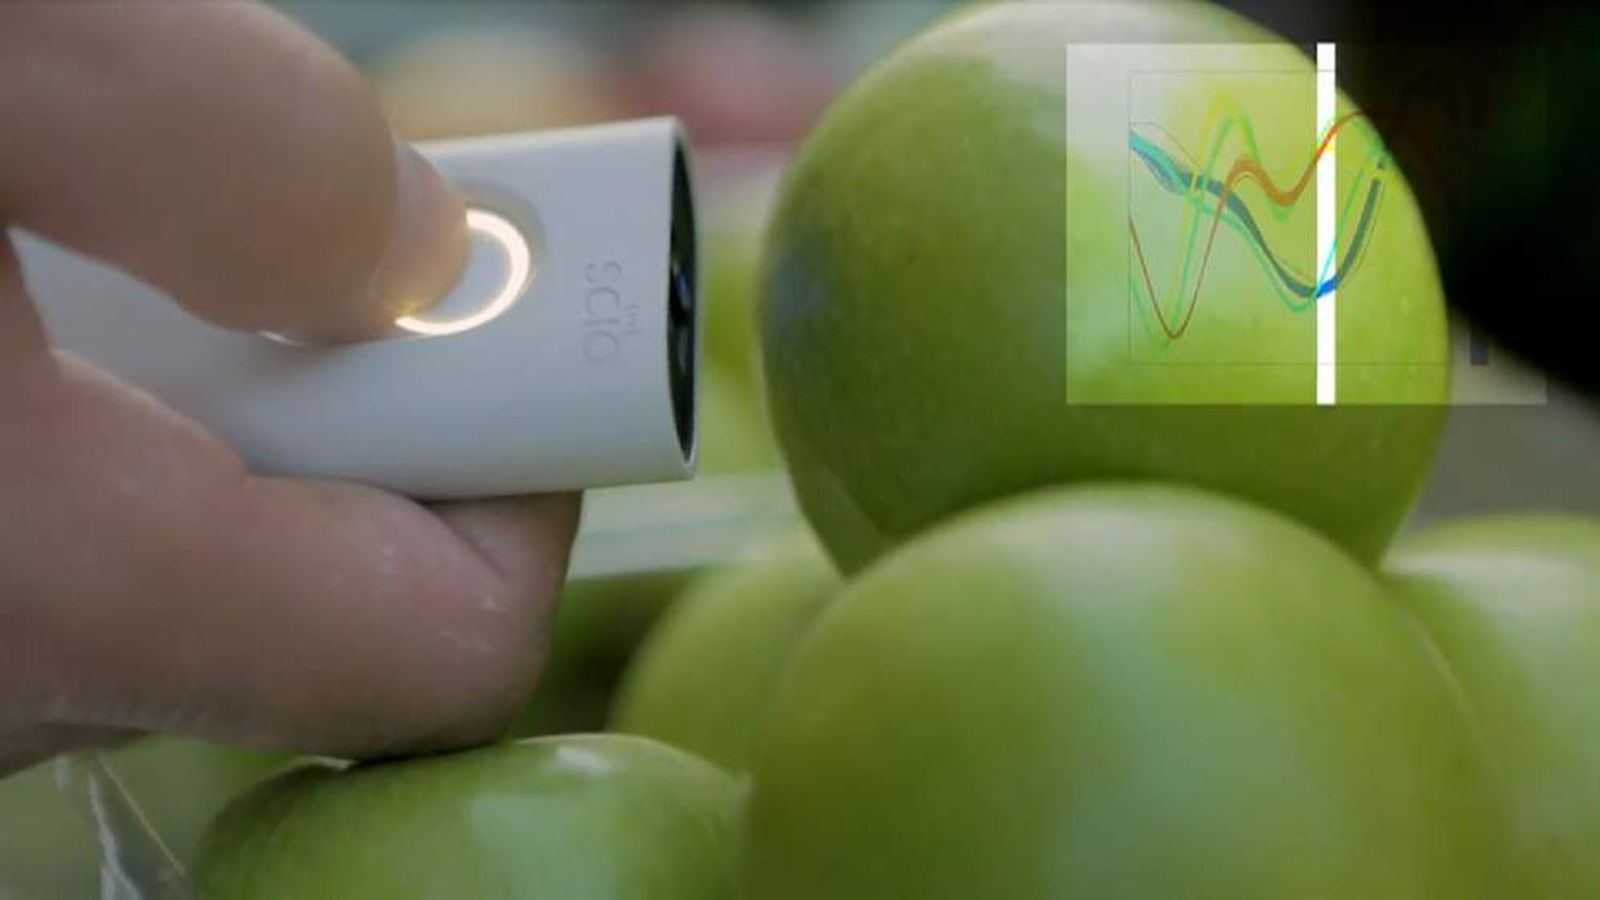 The uses for the scanners are 'endless', including instant nutritional data